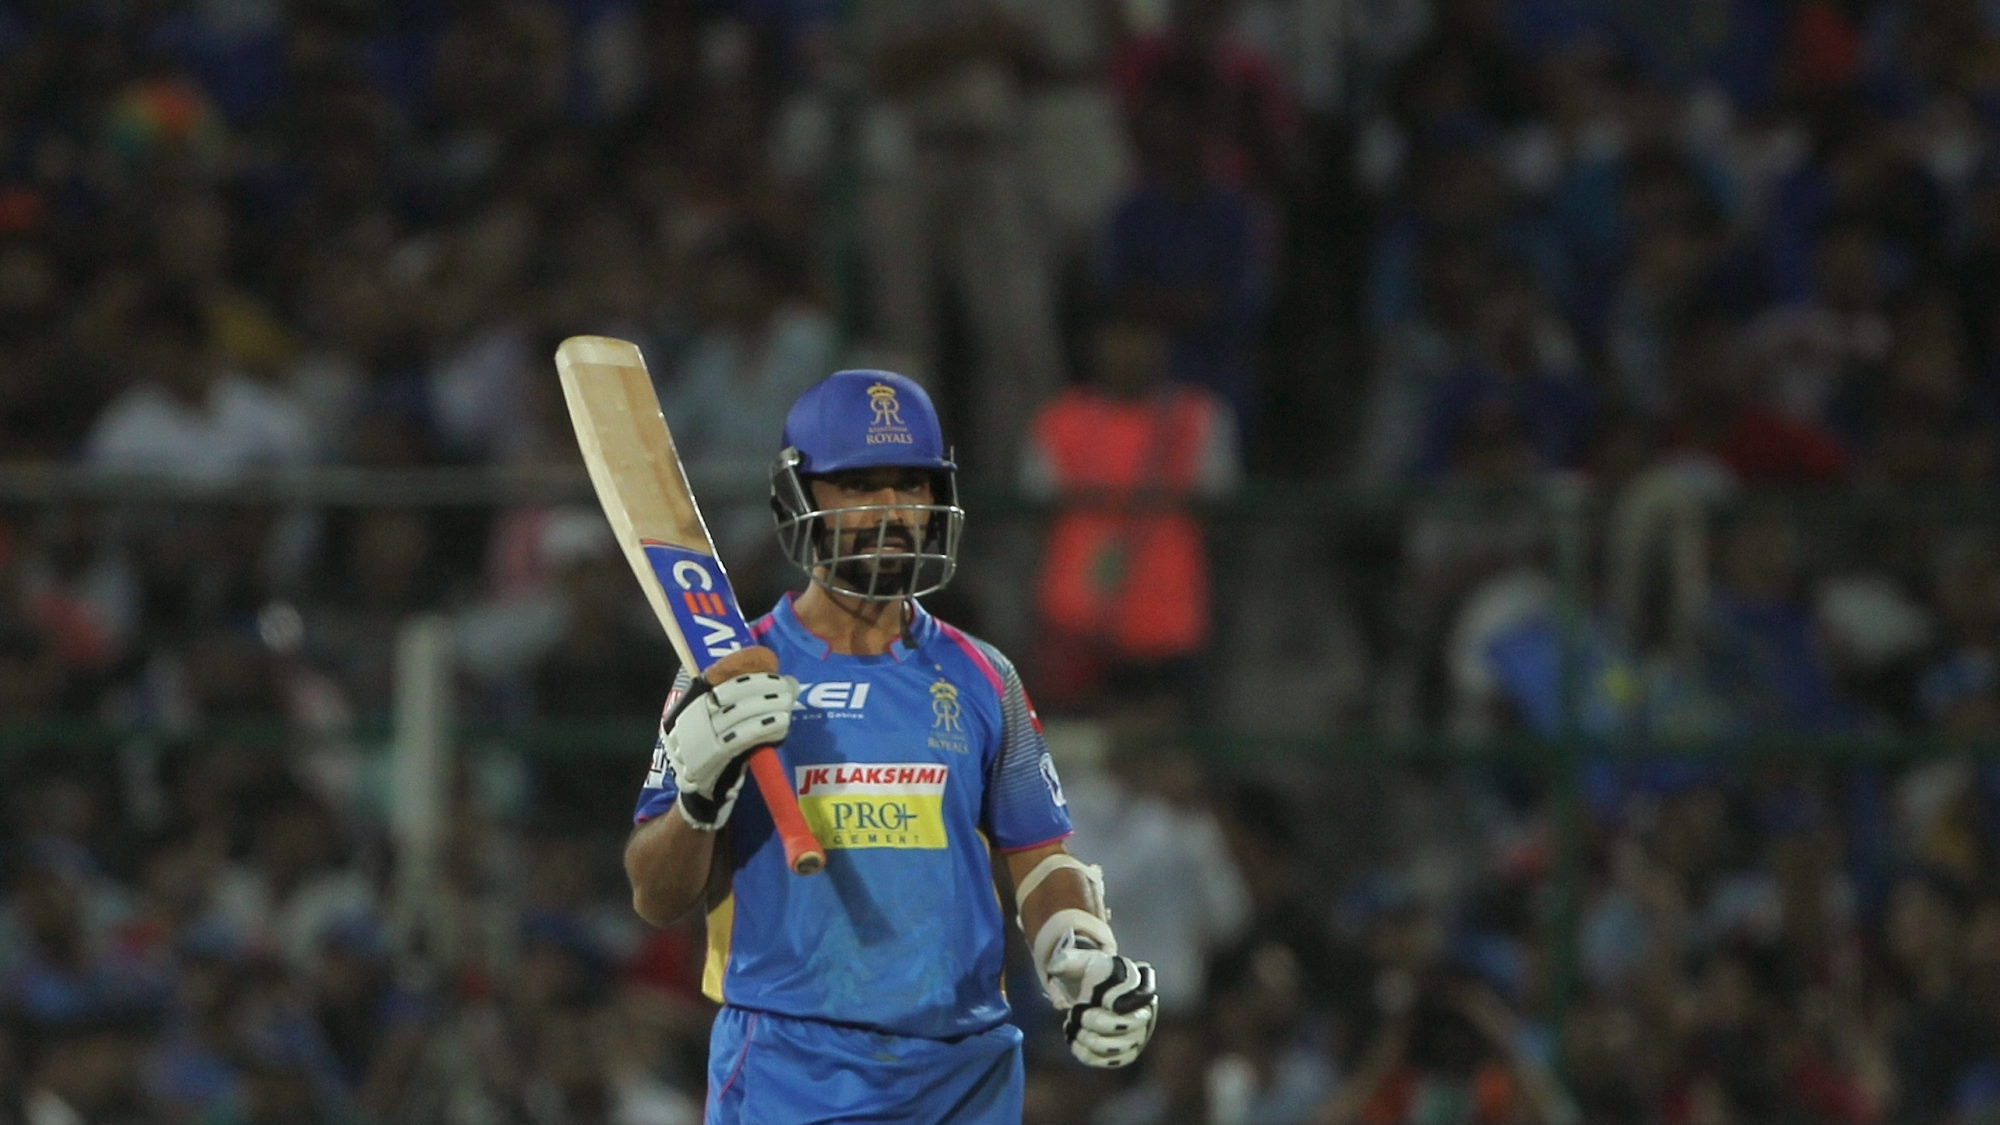 IPL 2018: Rajasthan Royals batsmen will have to take more responsibility, says Ajinkya Rahane